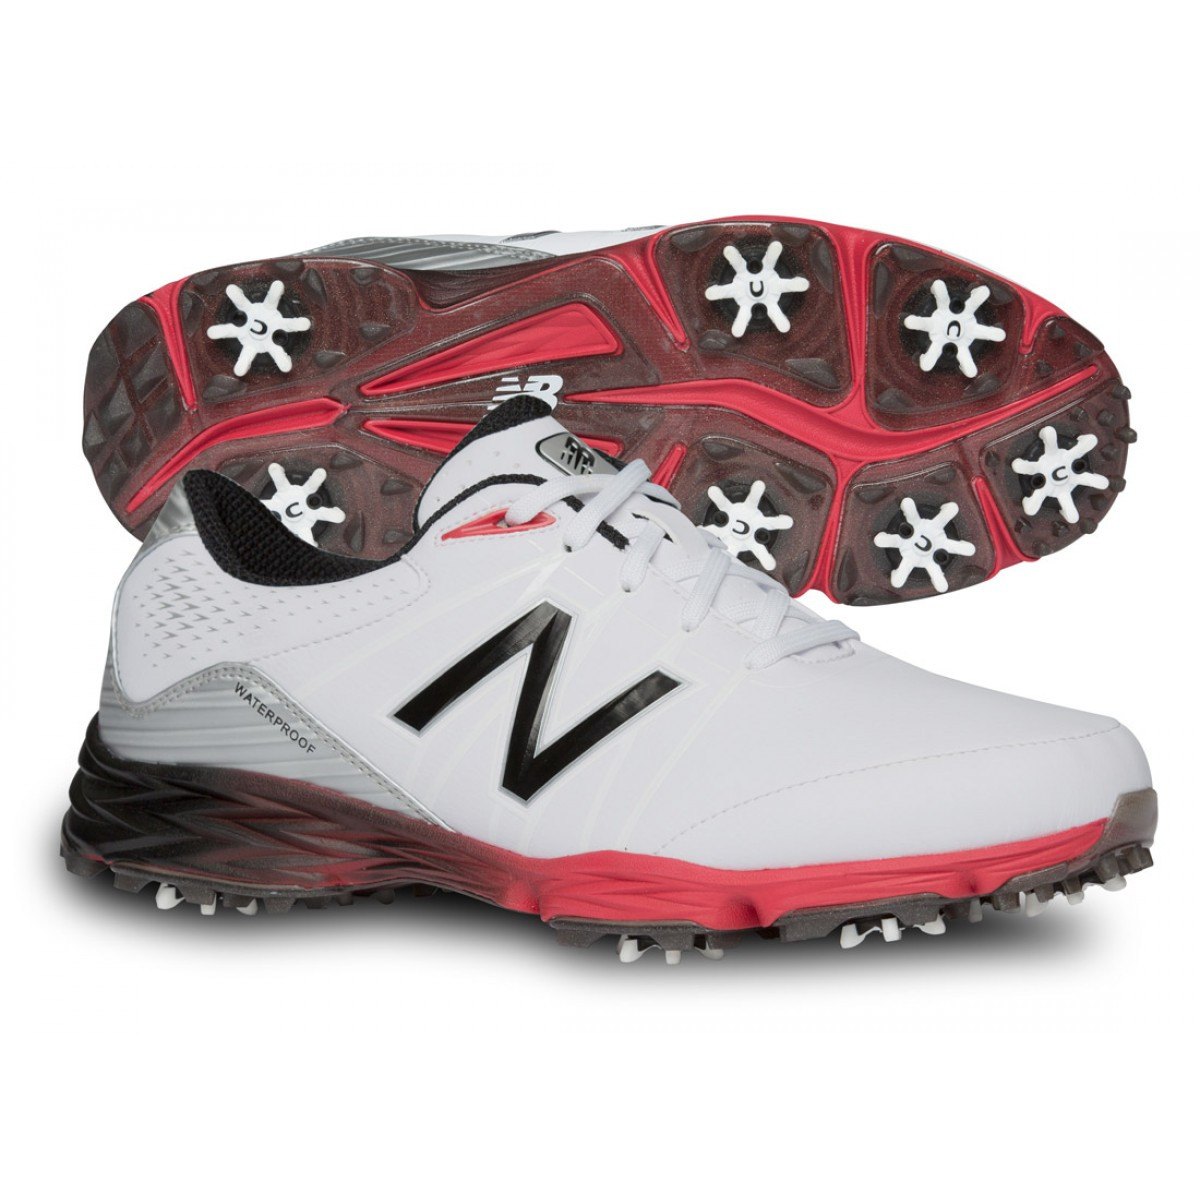 f37172f017bc8 ... New Balance NBG2004 Golf Shoes. Click to enlarge